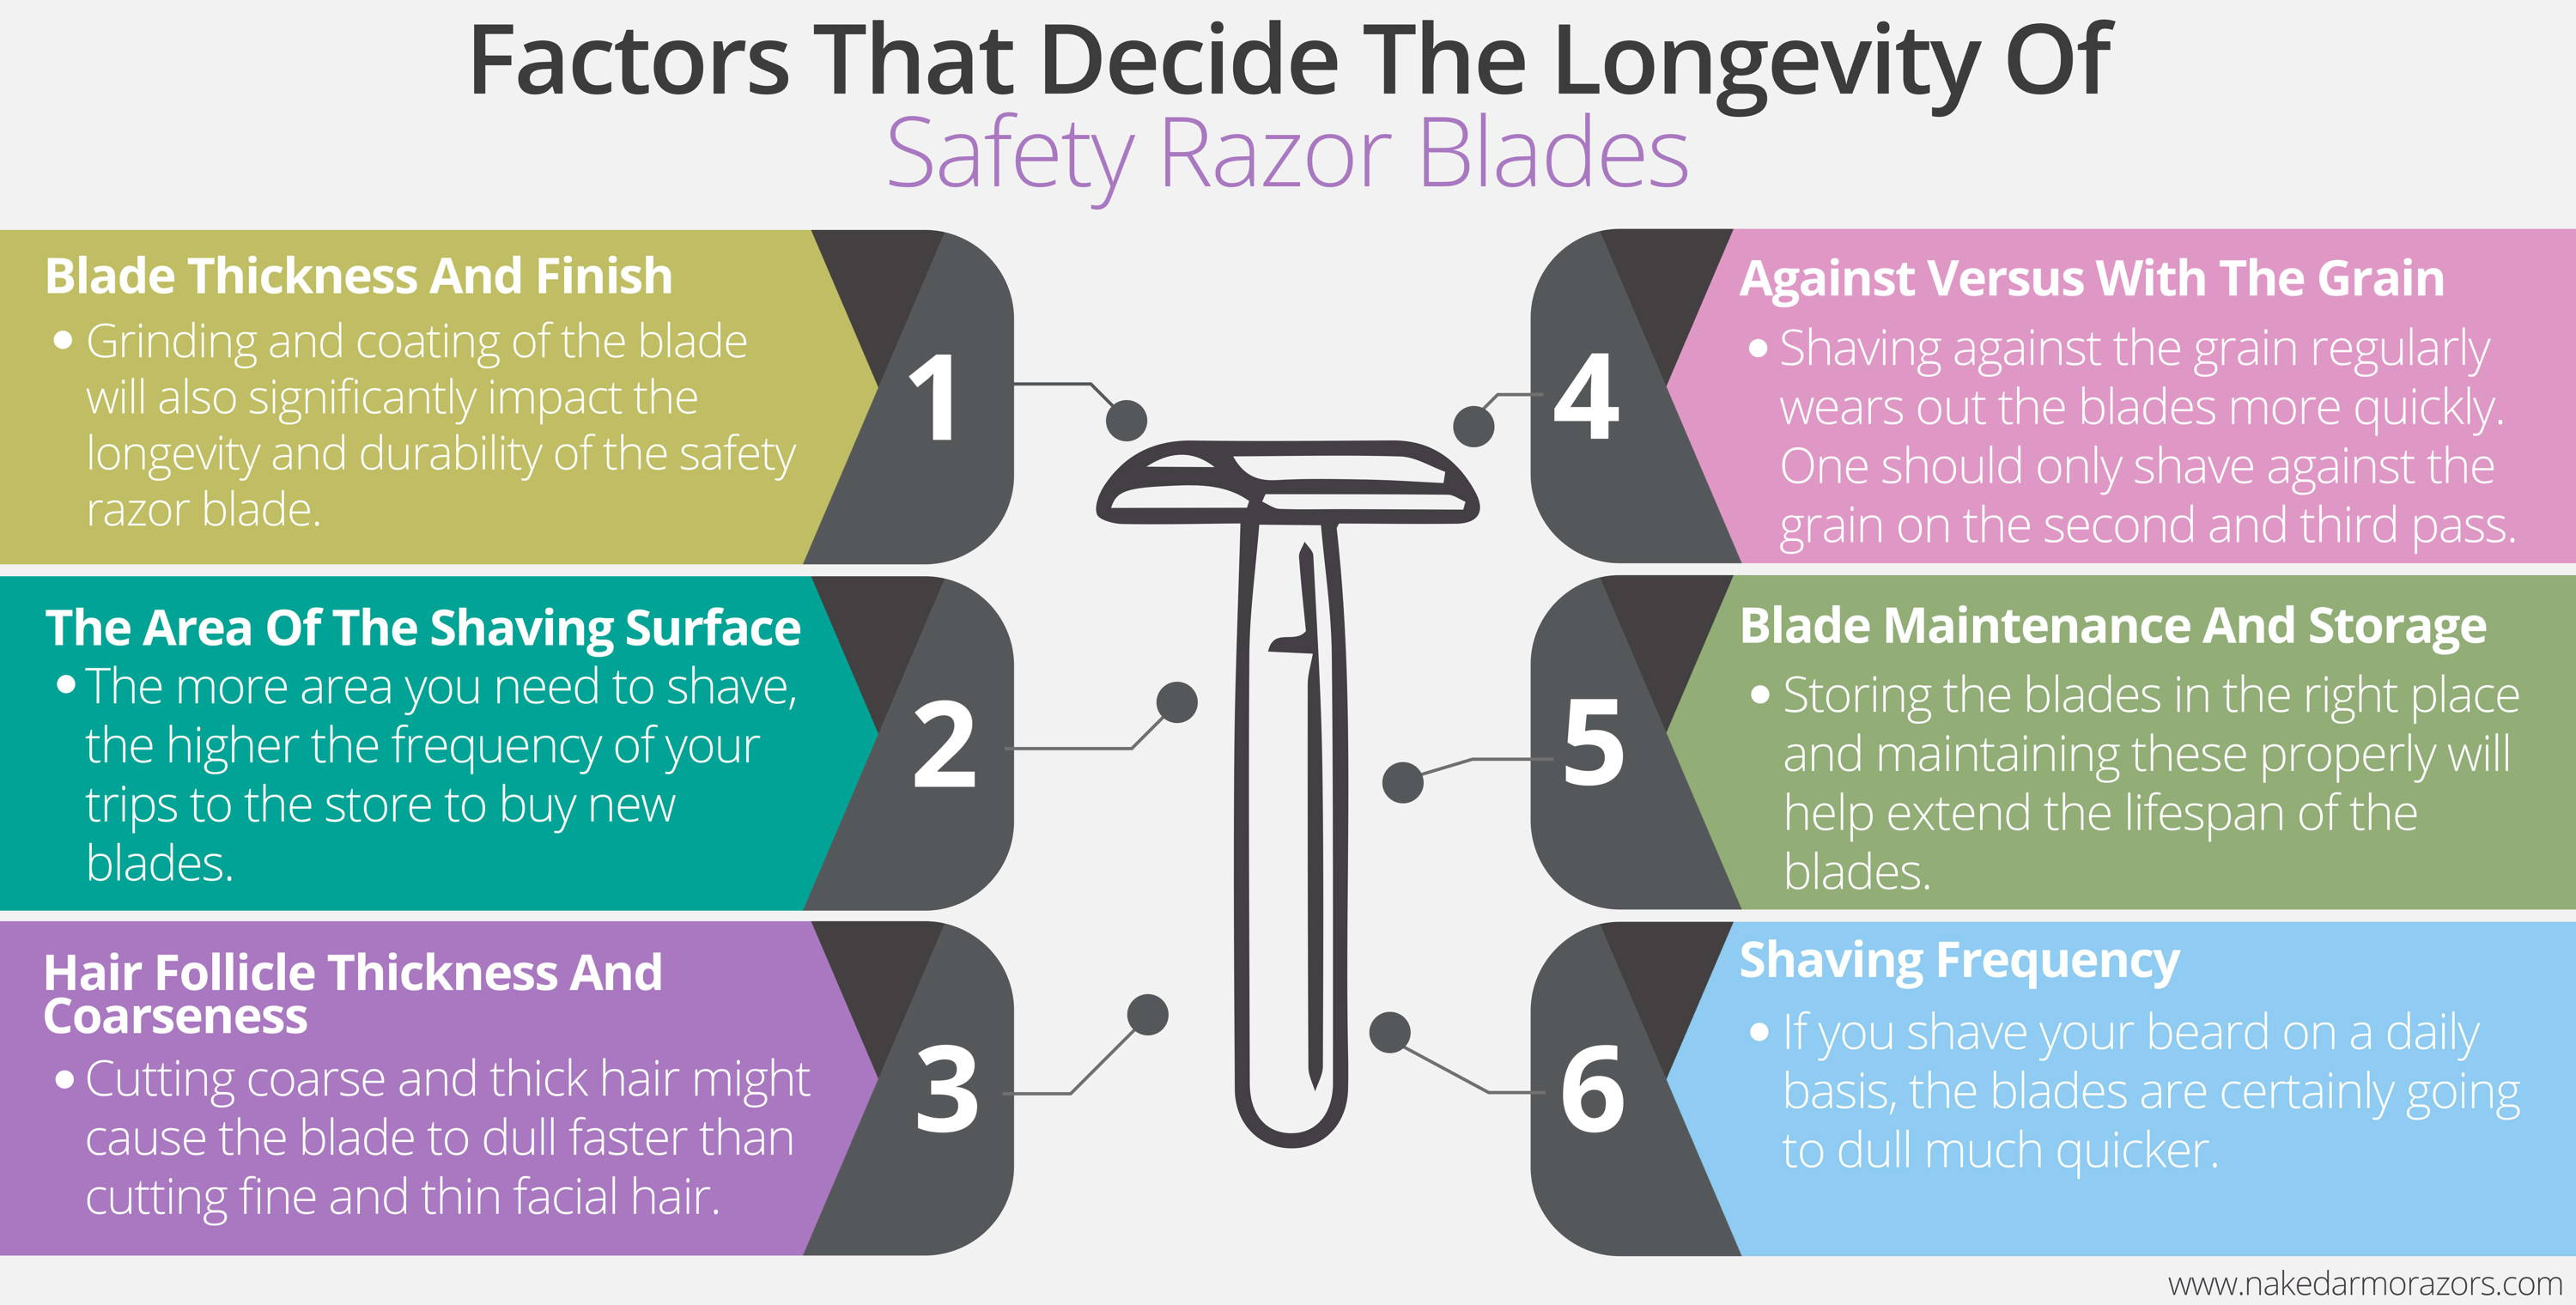 Factors That Decides The Longevity Of Safety Razor Blades